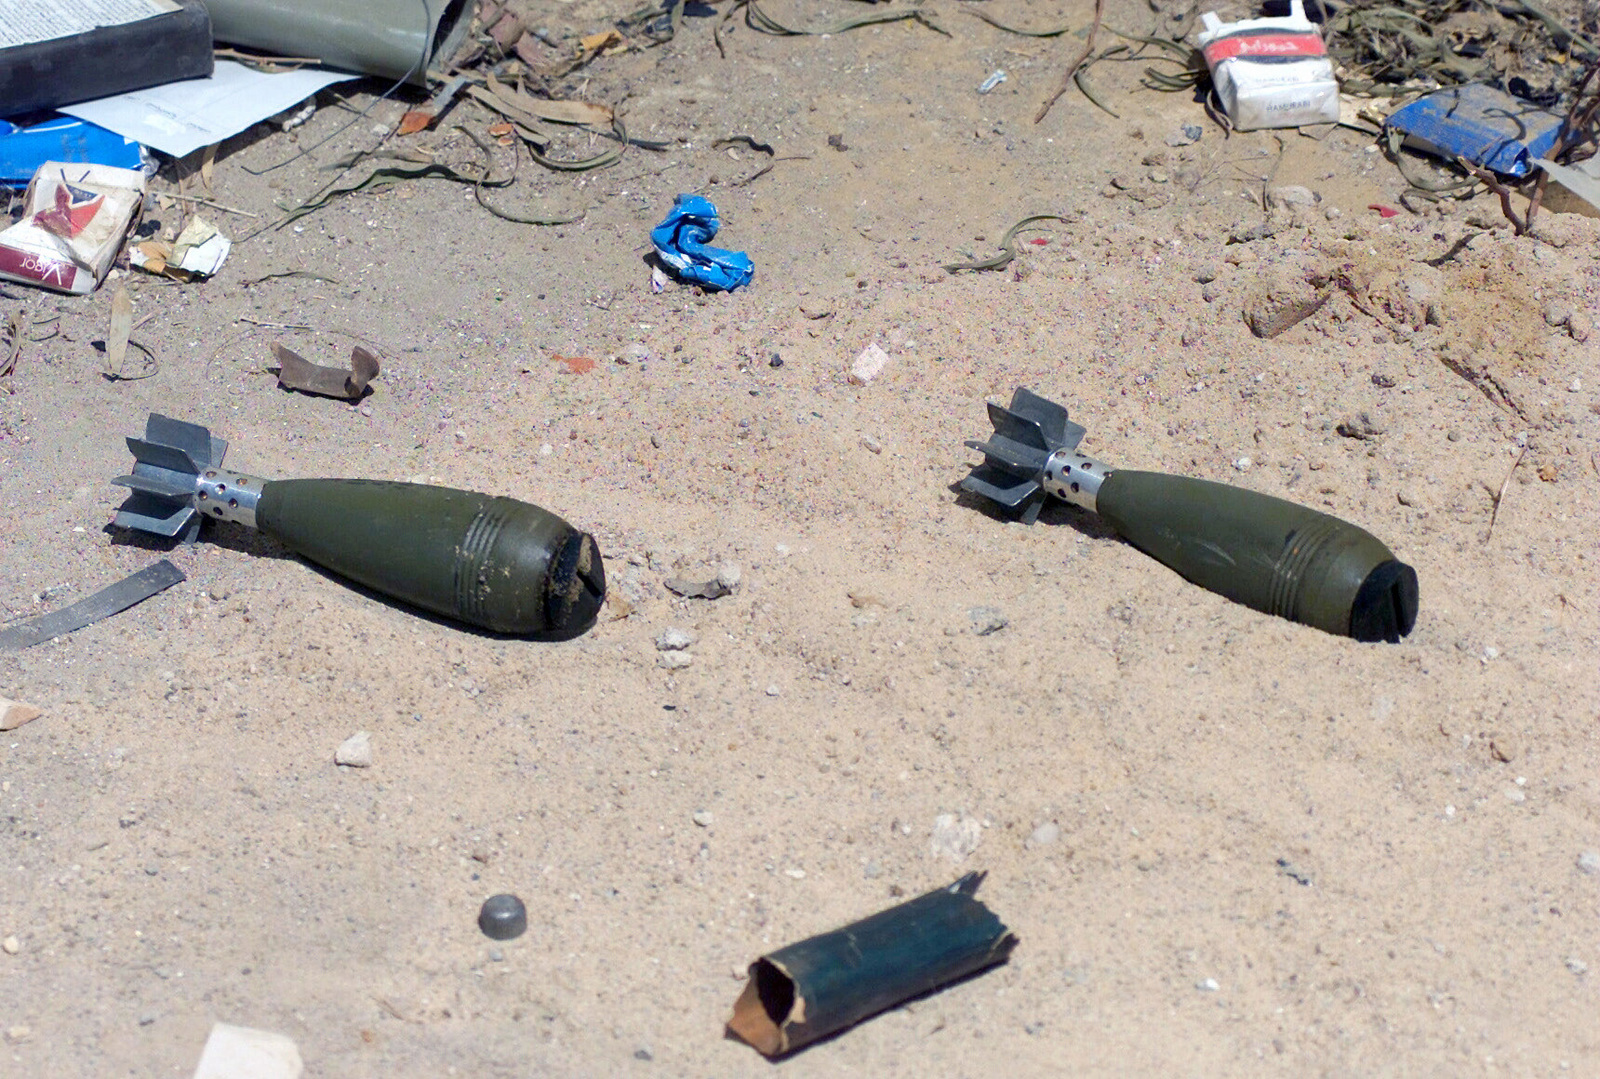 Two Iraqi 82mm mortar rounds lay in an El Fedayeen